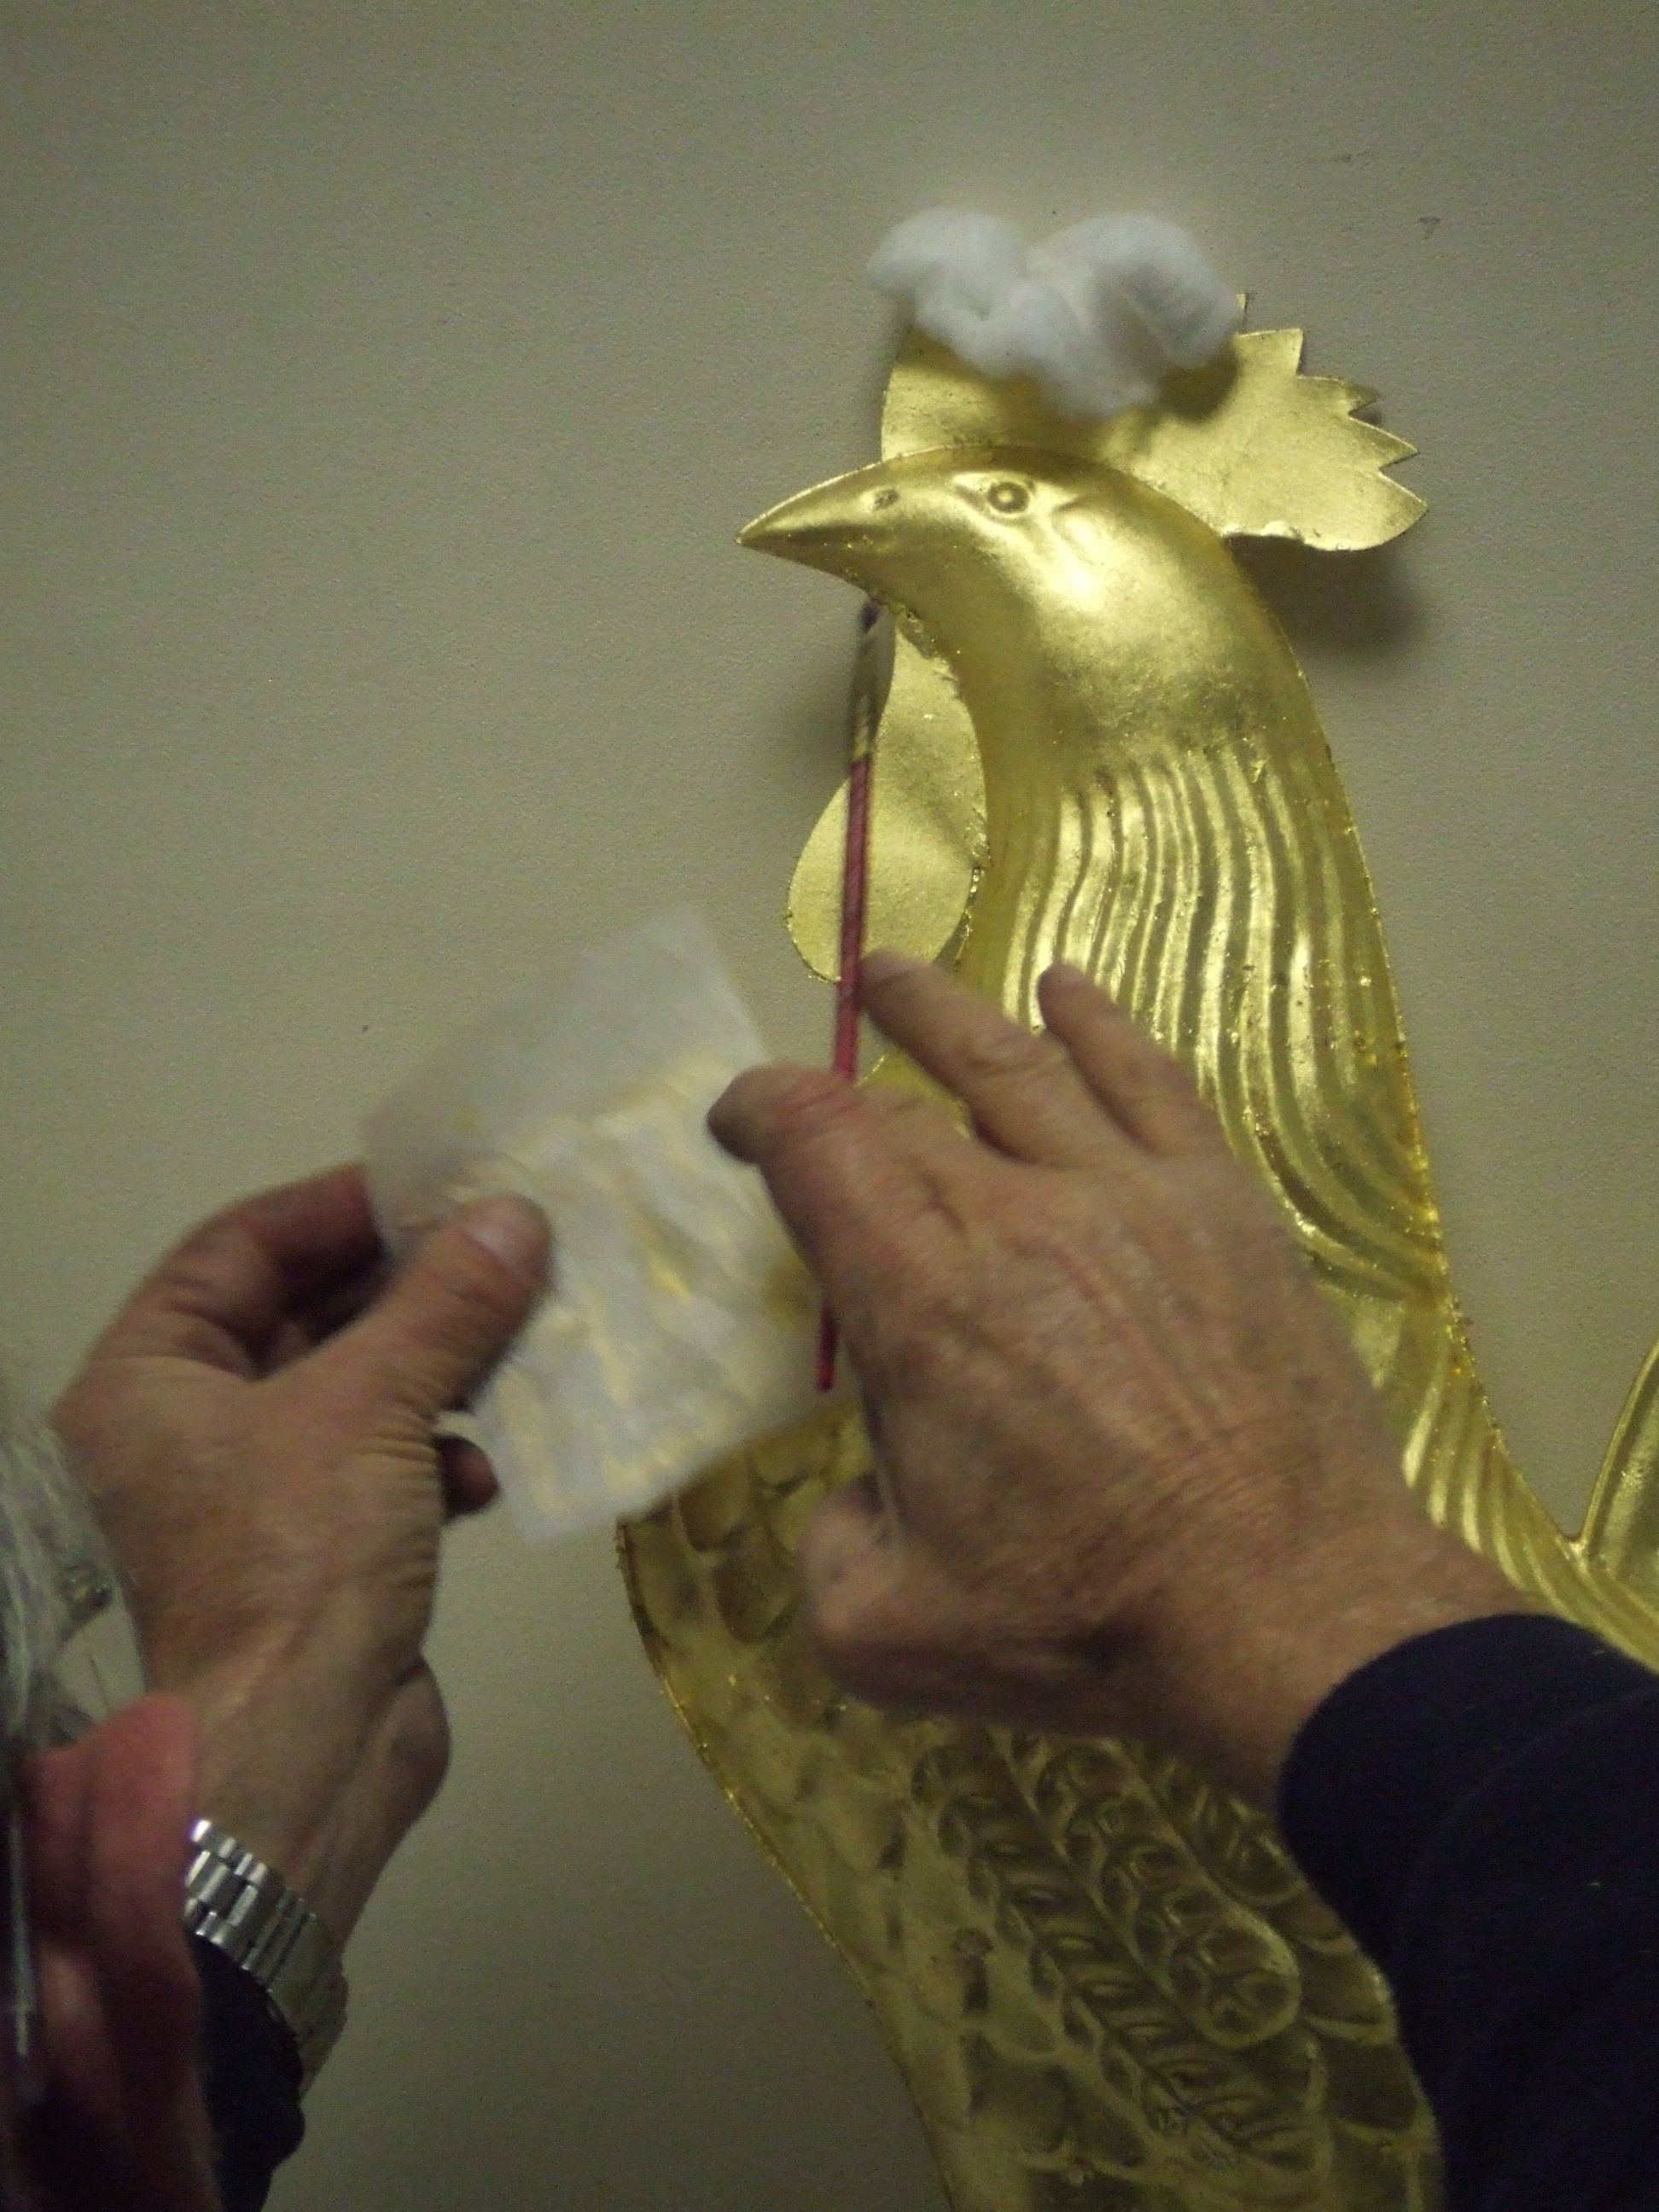 Weathervane - Hand gilding a Rooster